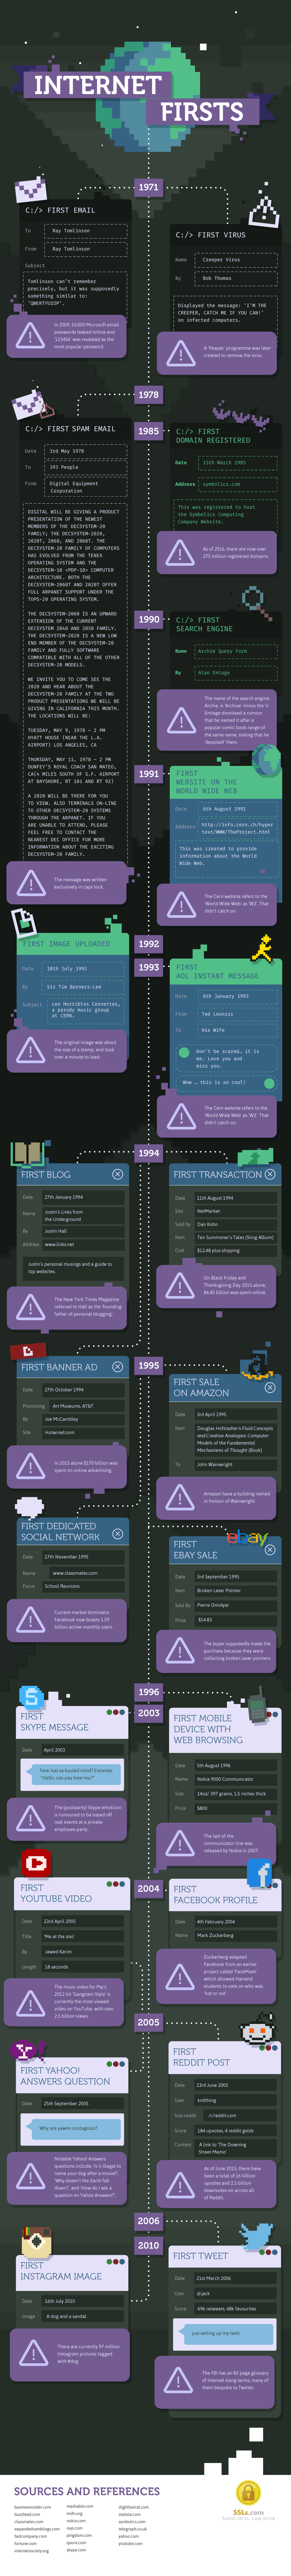 Internet First #Infographic